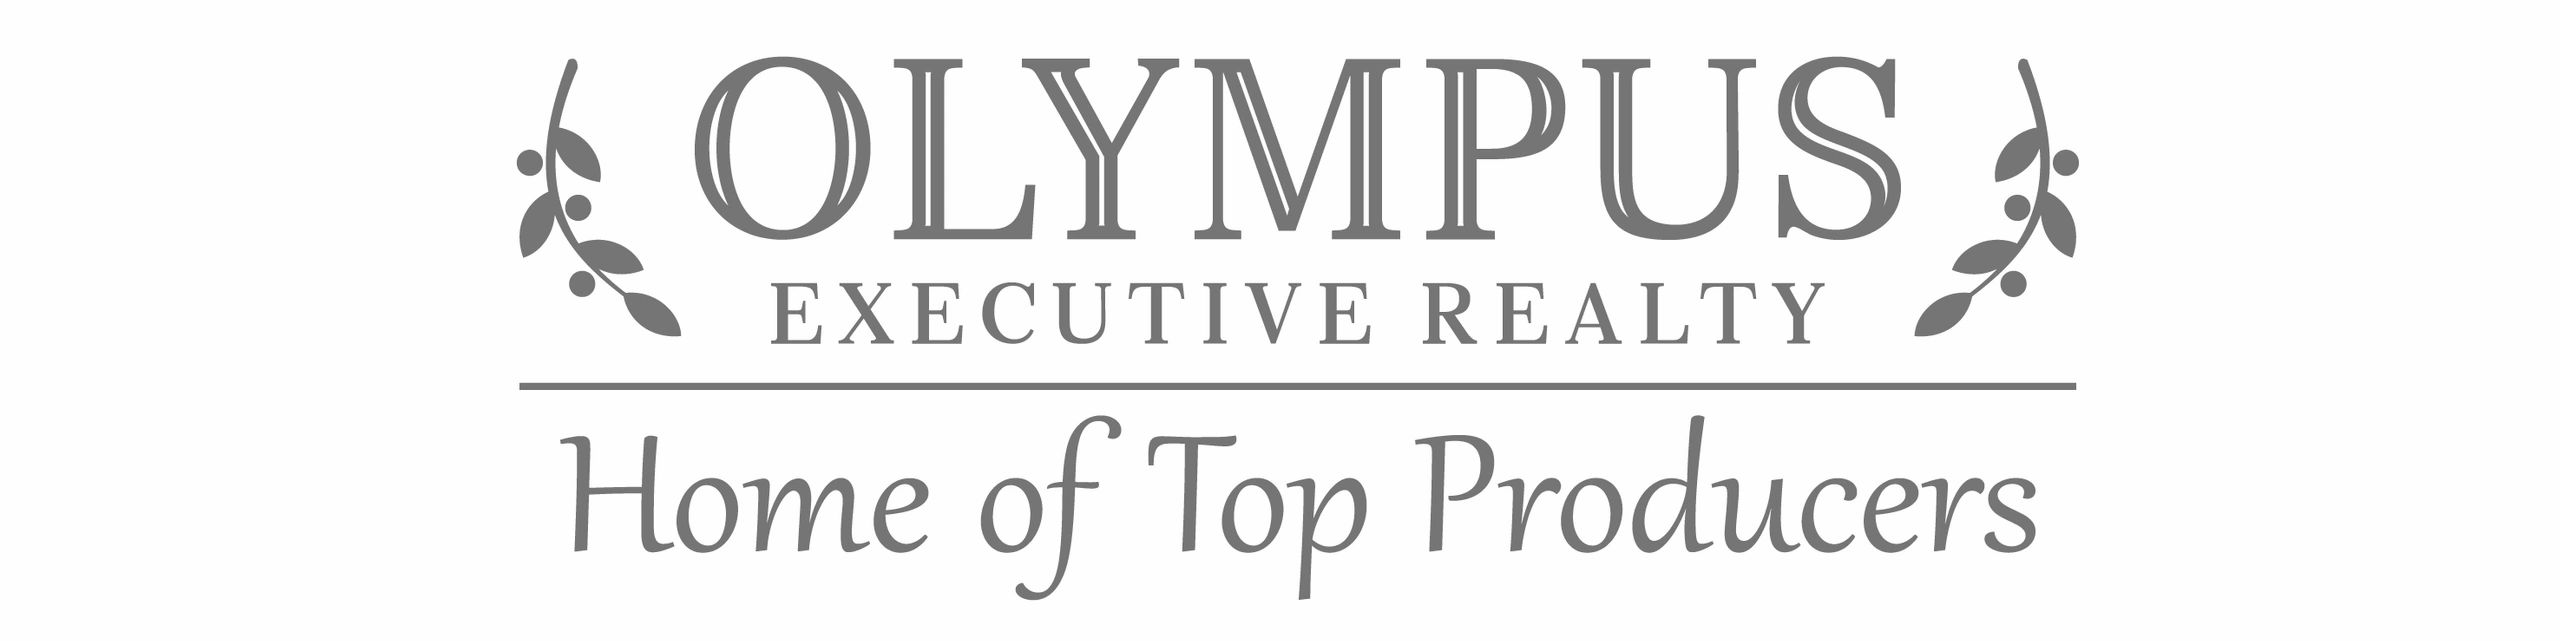 100% Commission Real Estate Brokerage - Olympus Executive Realty INC